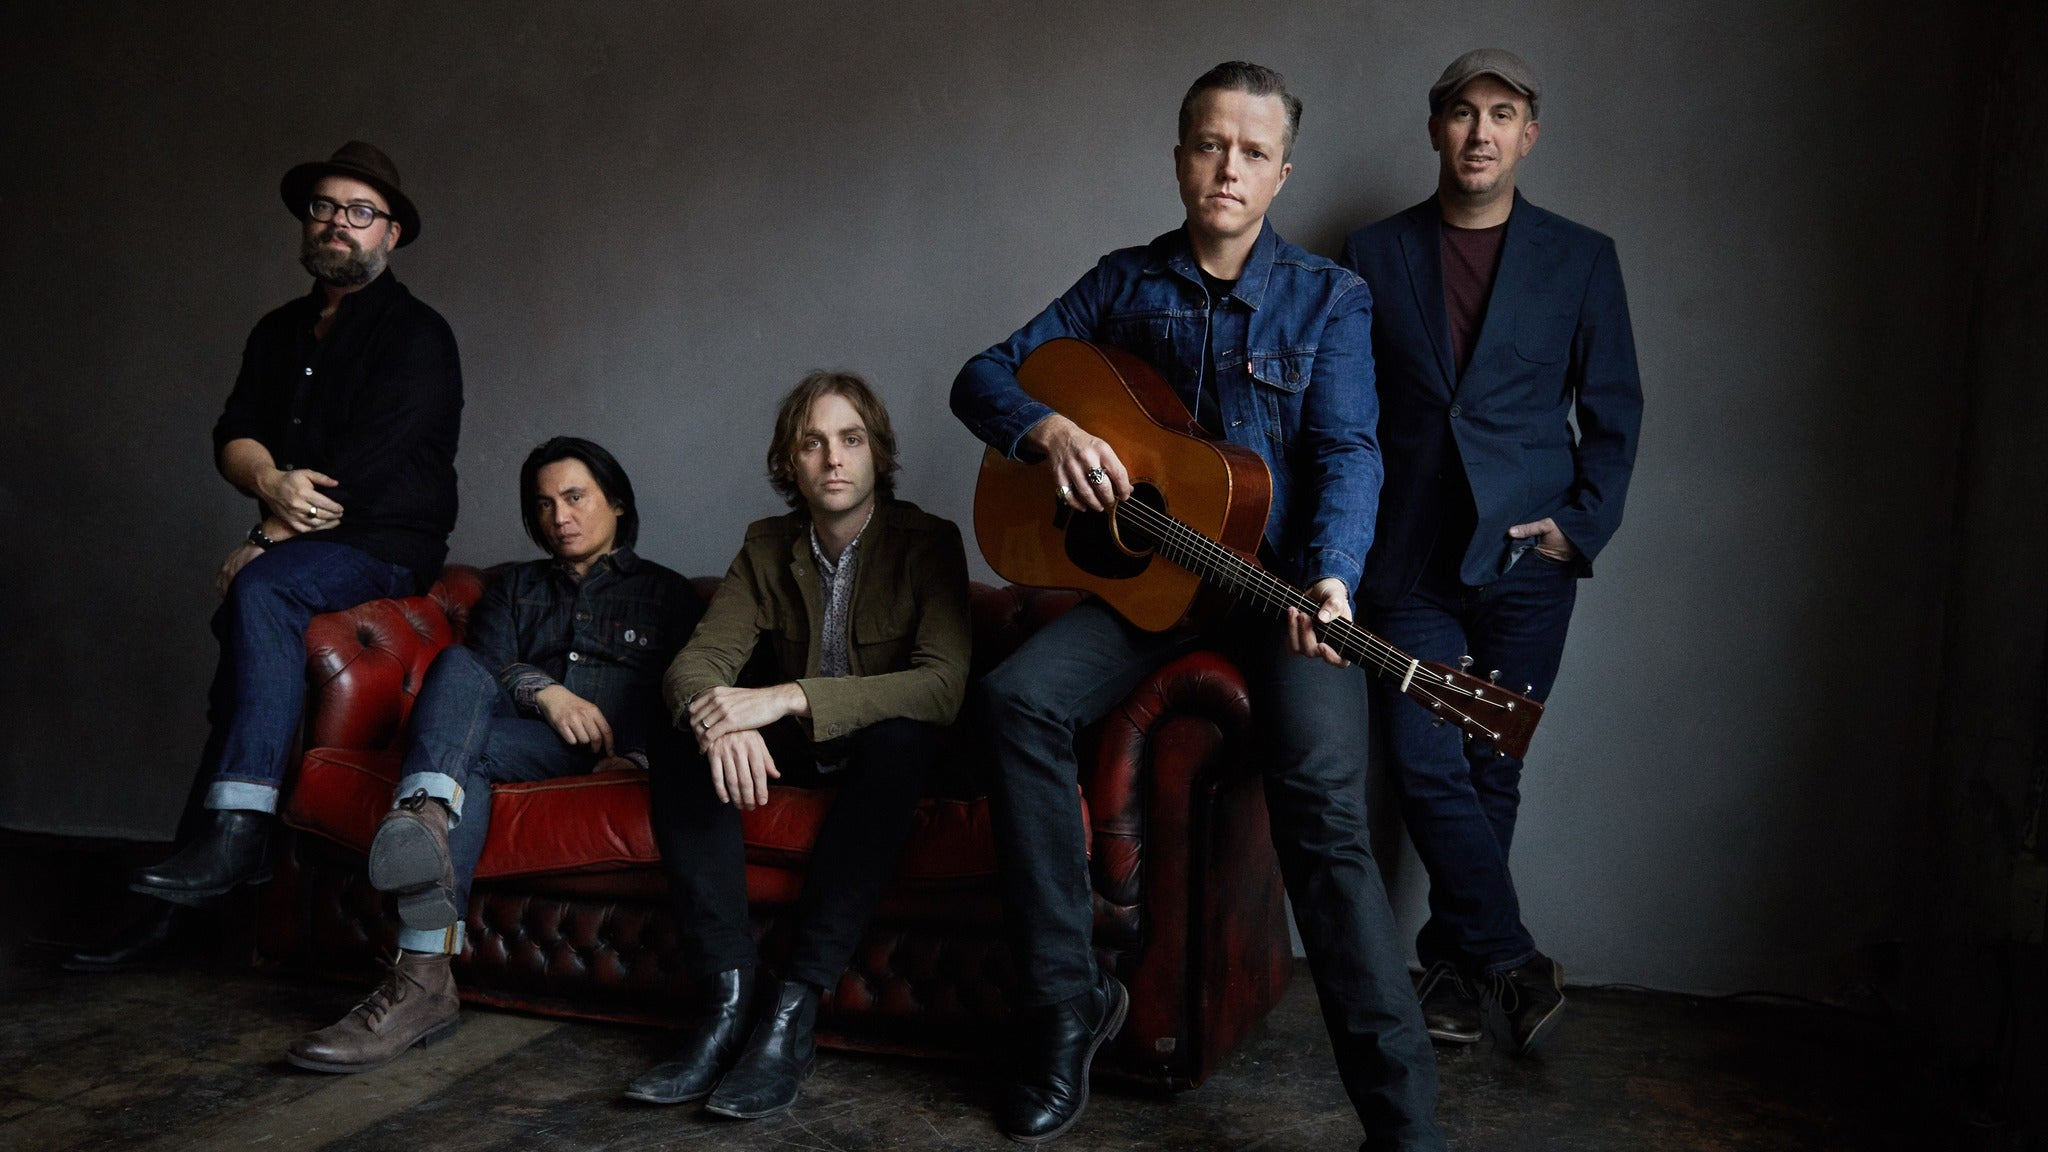 Jason Isbell & the 400 Unit at Alabama Theatre